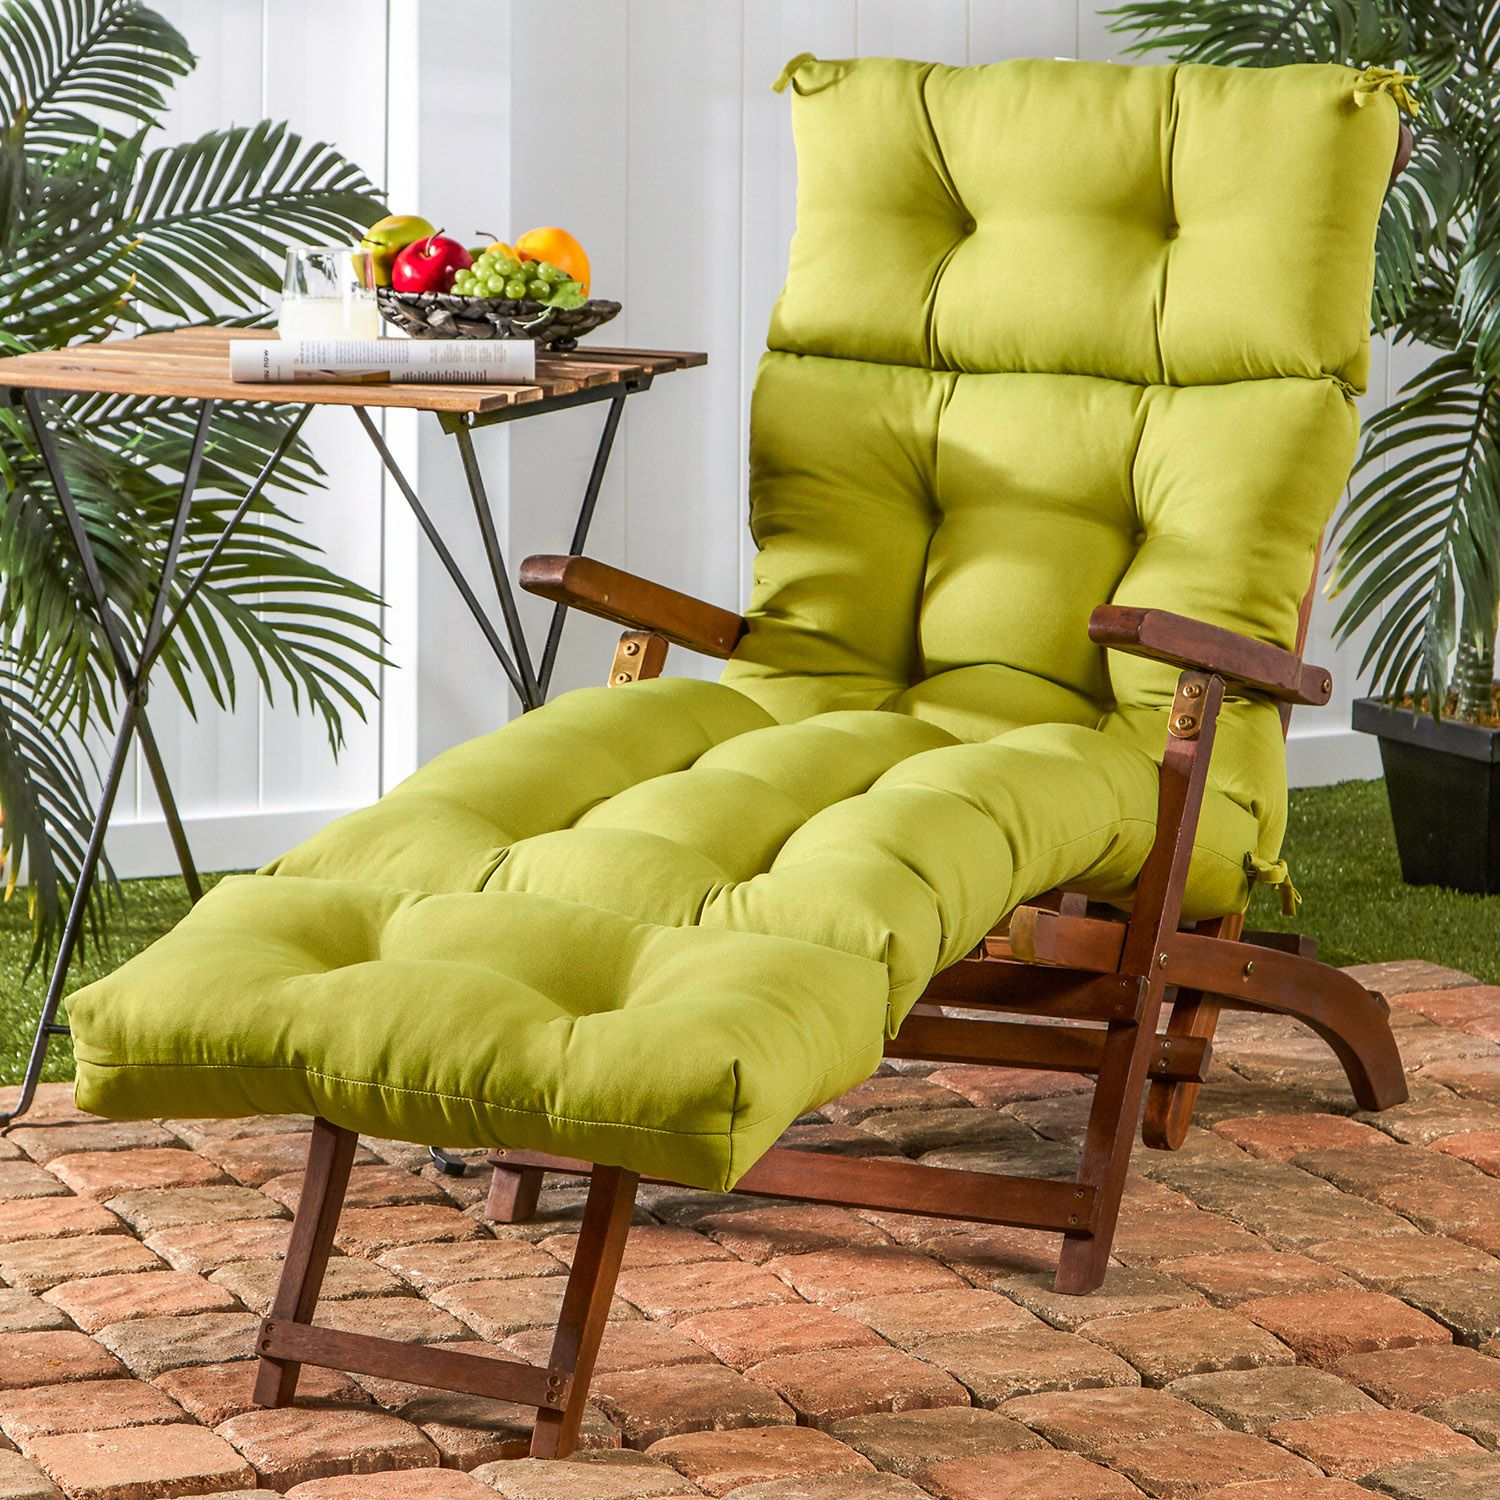 Superbe Greendale Home Fashions Outdoor Chaise Lounge Cushion